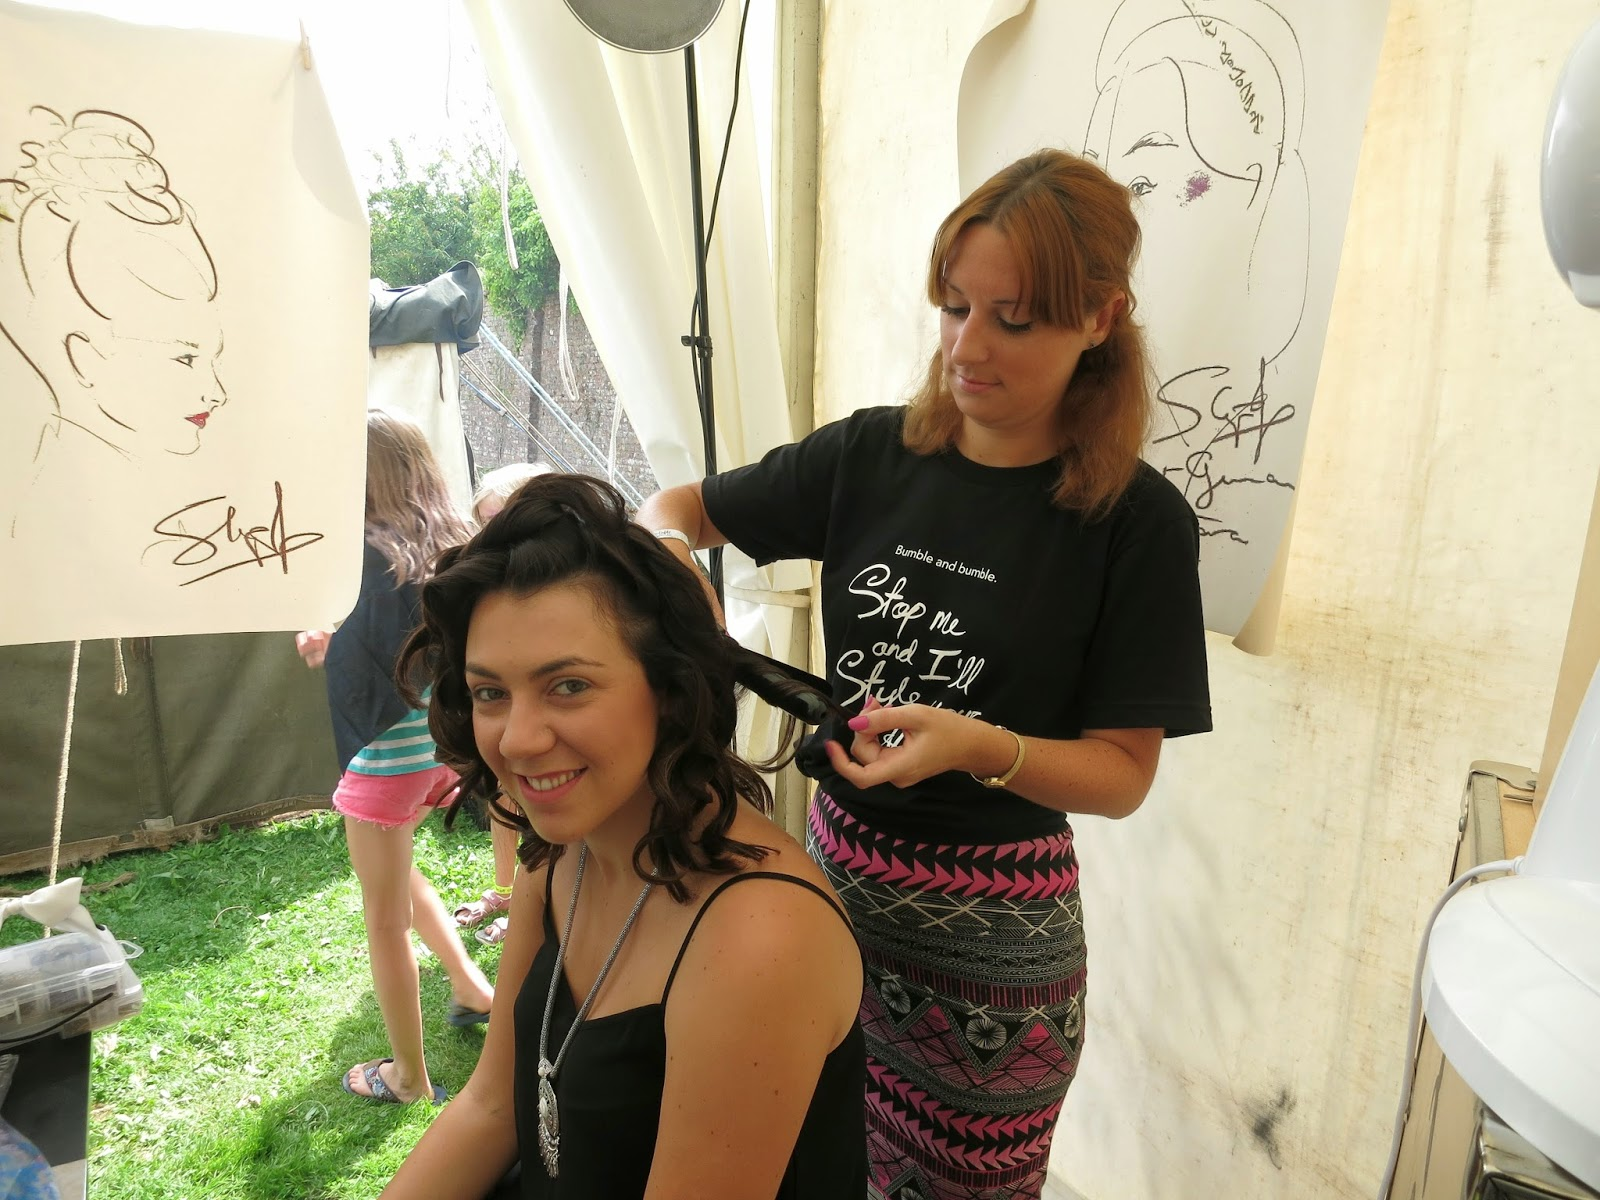 styling by bumble and bumble at port eliot festival 2014